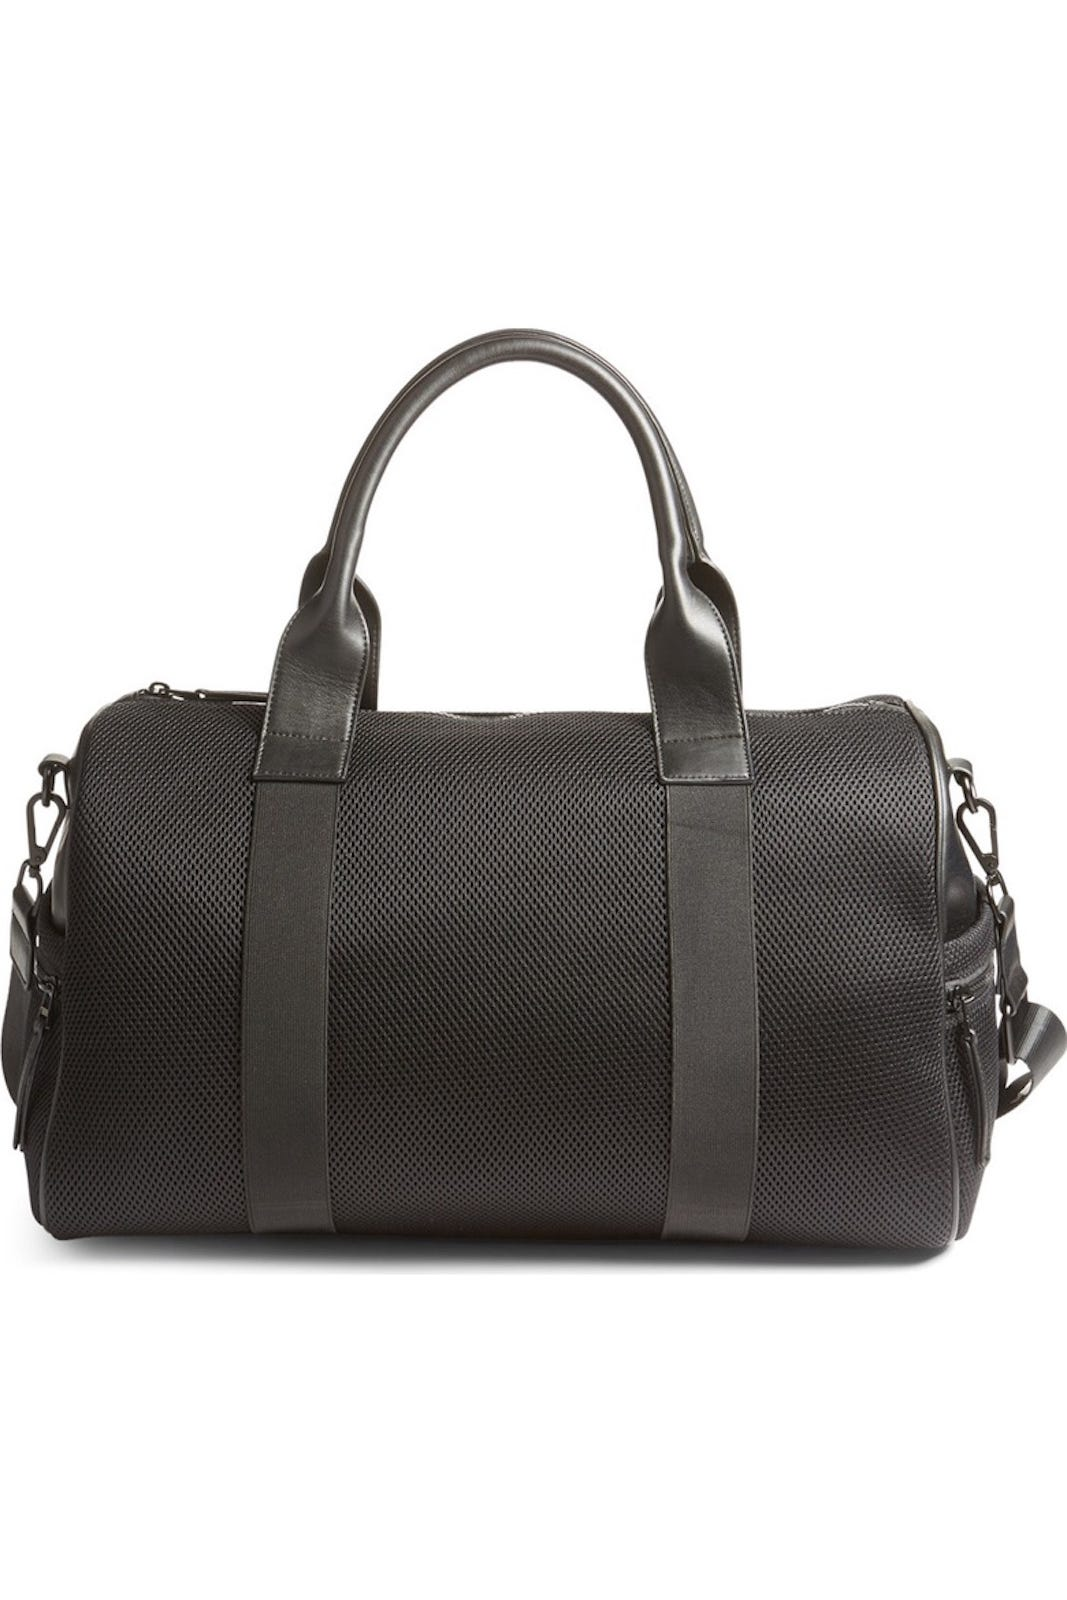 best gym bags for women fitness gifts totes duffles. Black Bedroom Furniture Sets. Home Design Ideas